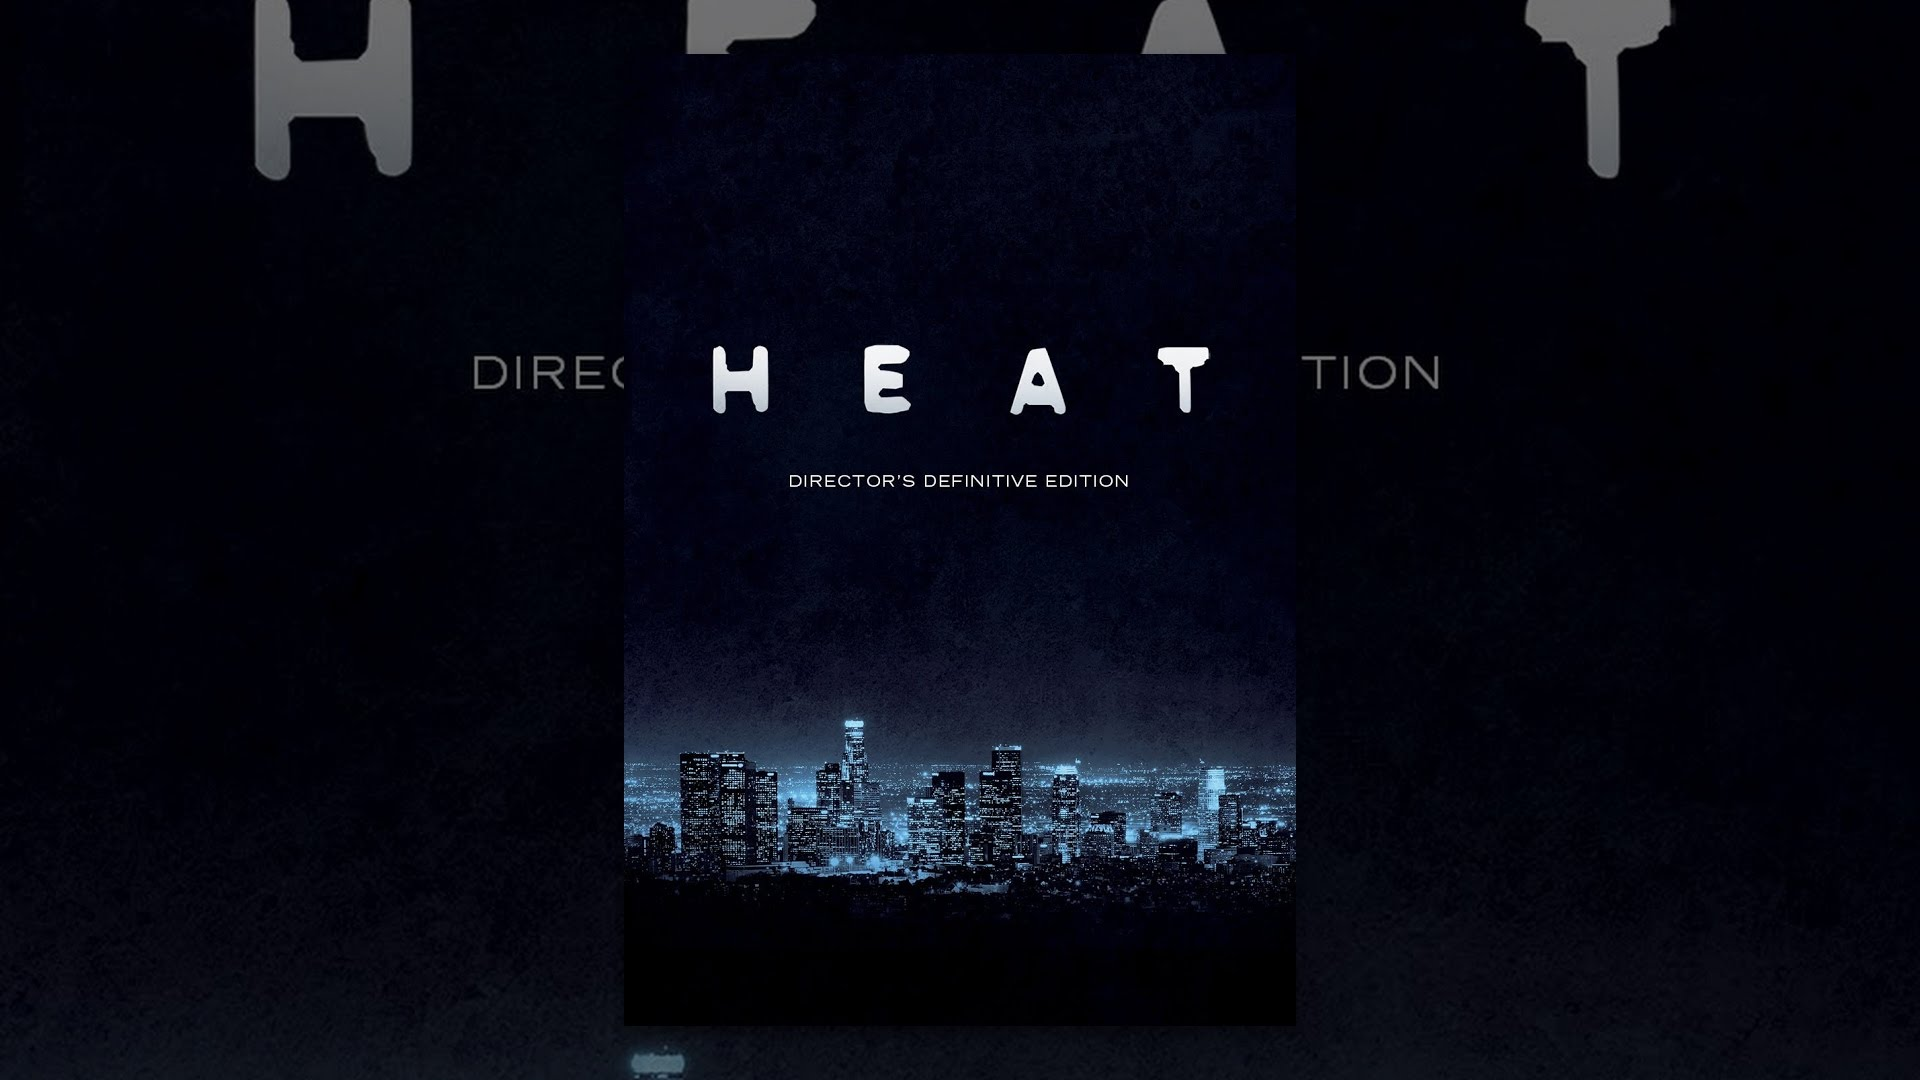 Download Heat: Director's Definitive Edition